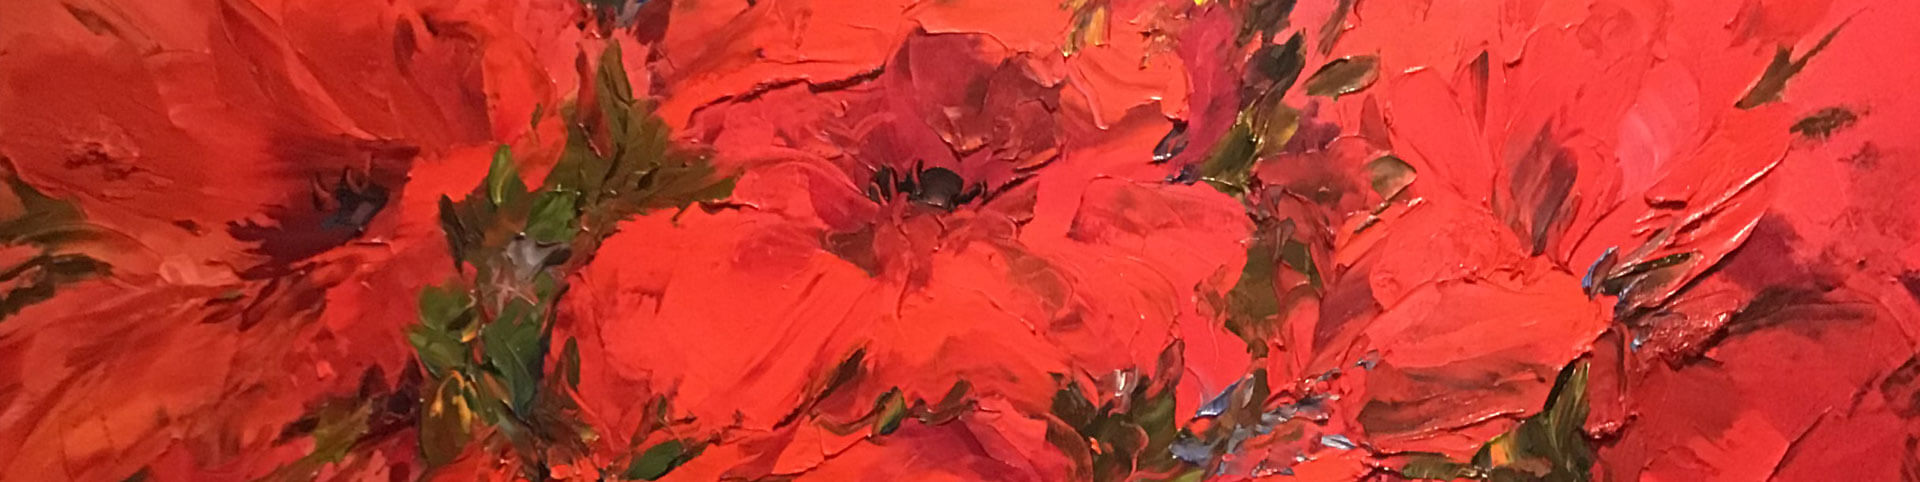 Cropped red poppies painting